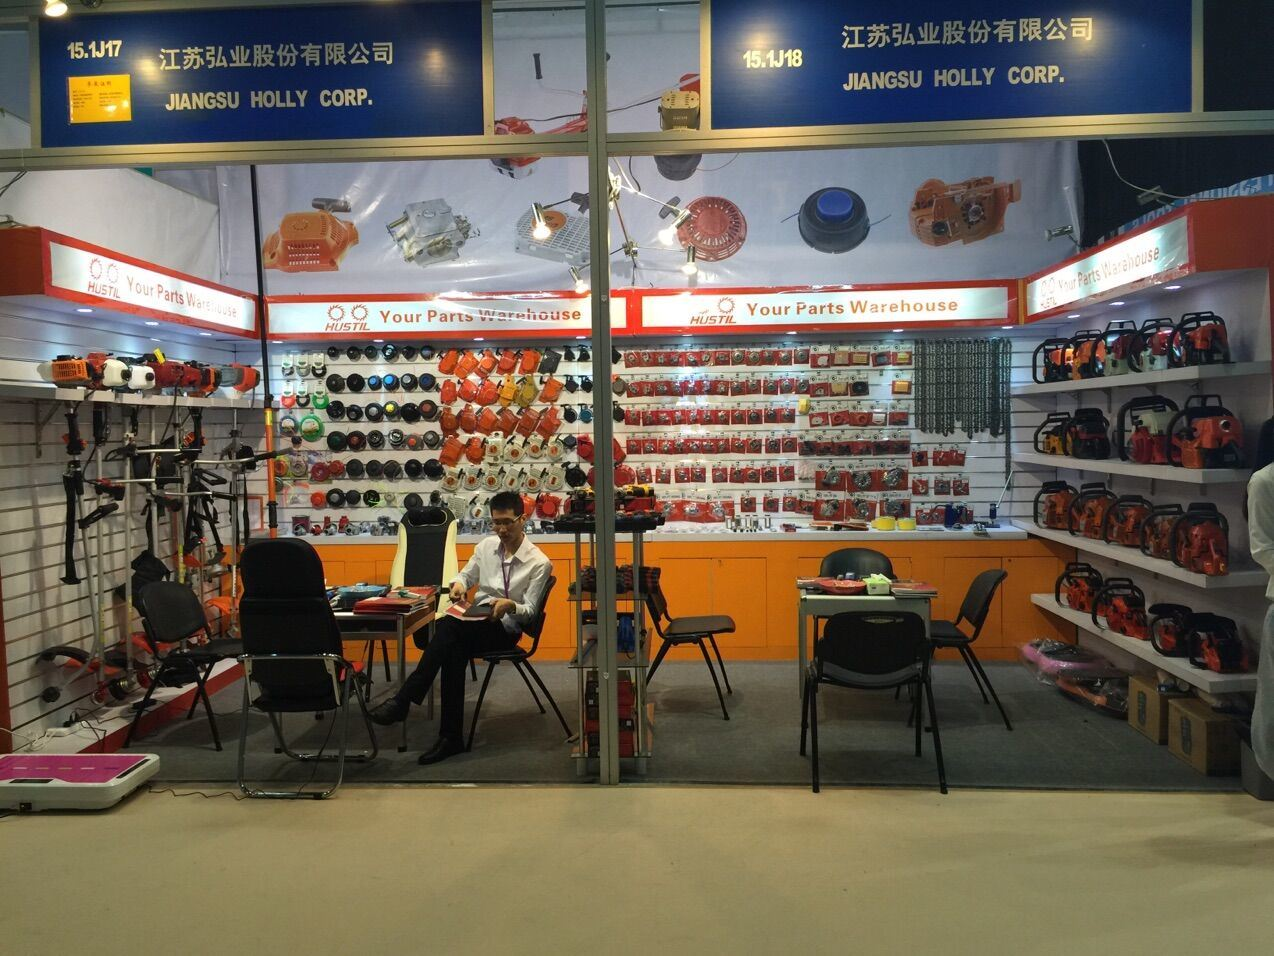 Canton Fair booth No. 15.1 J17